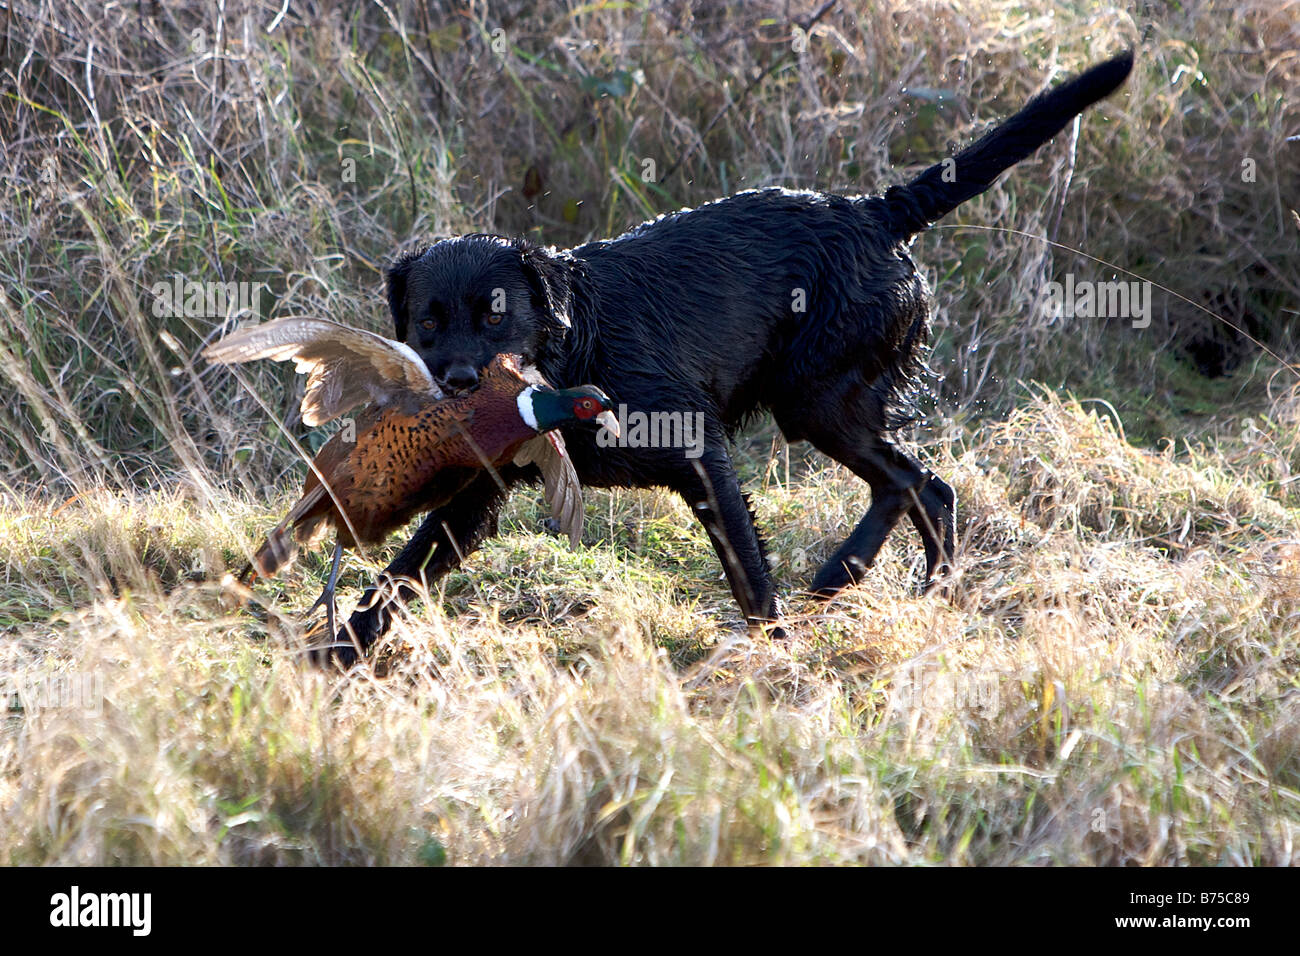 A black Labrador retrieves a Pheasant during a game shoot. - Stock Image